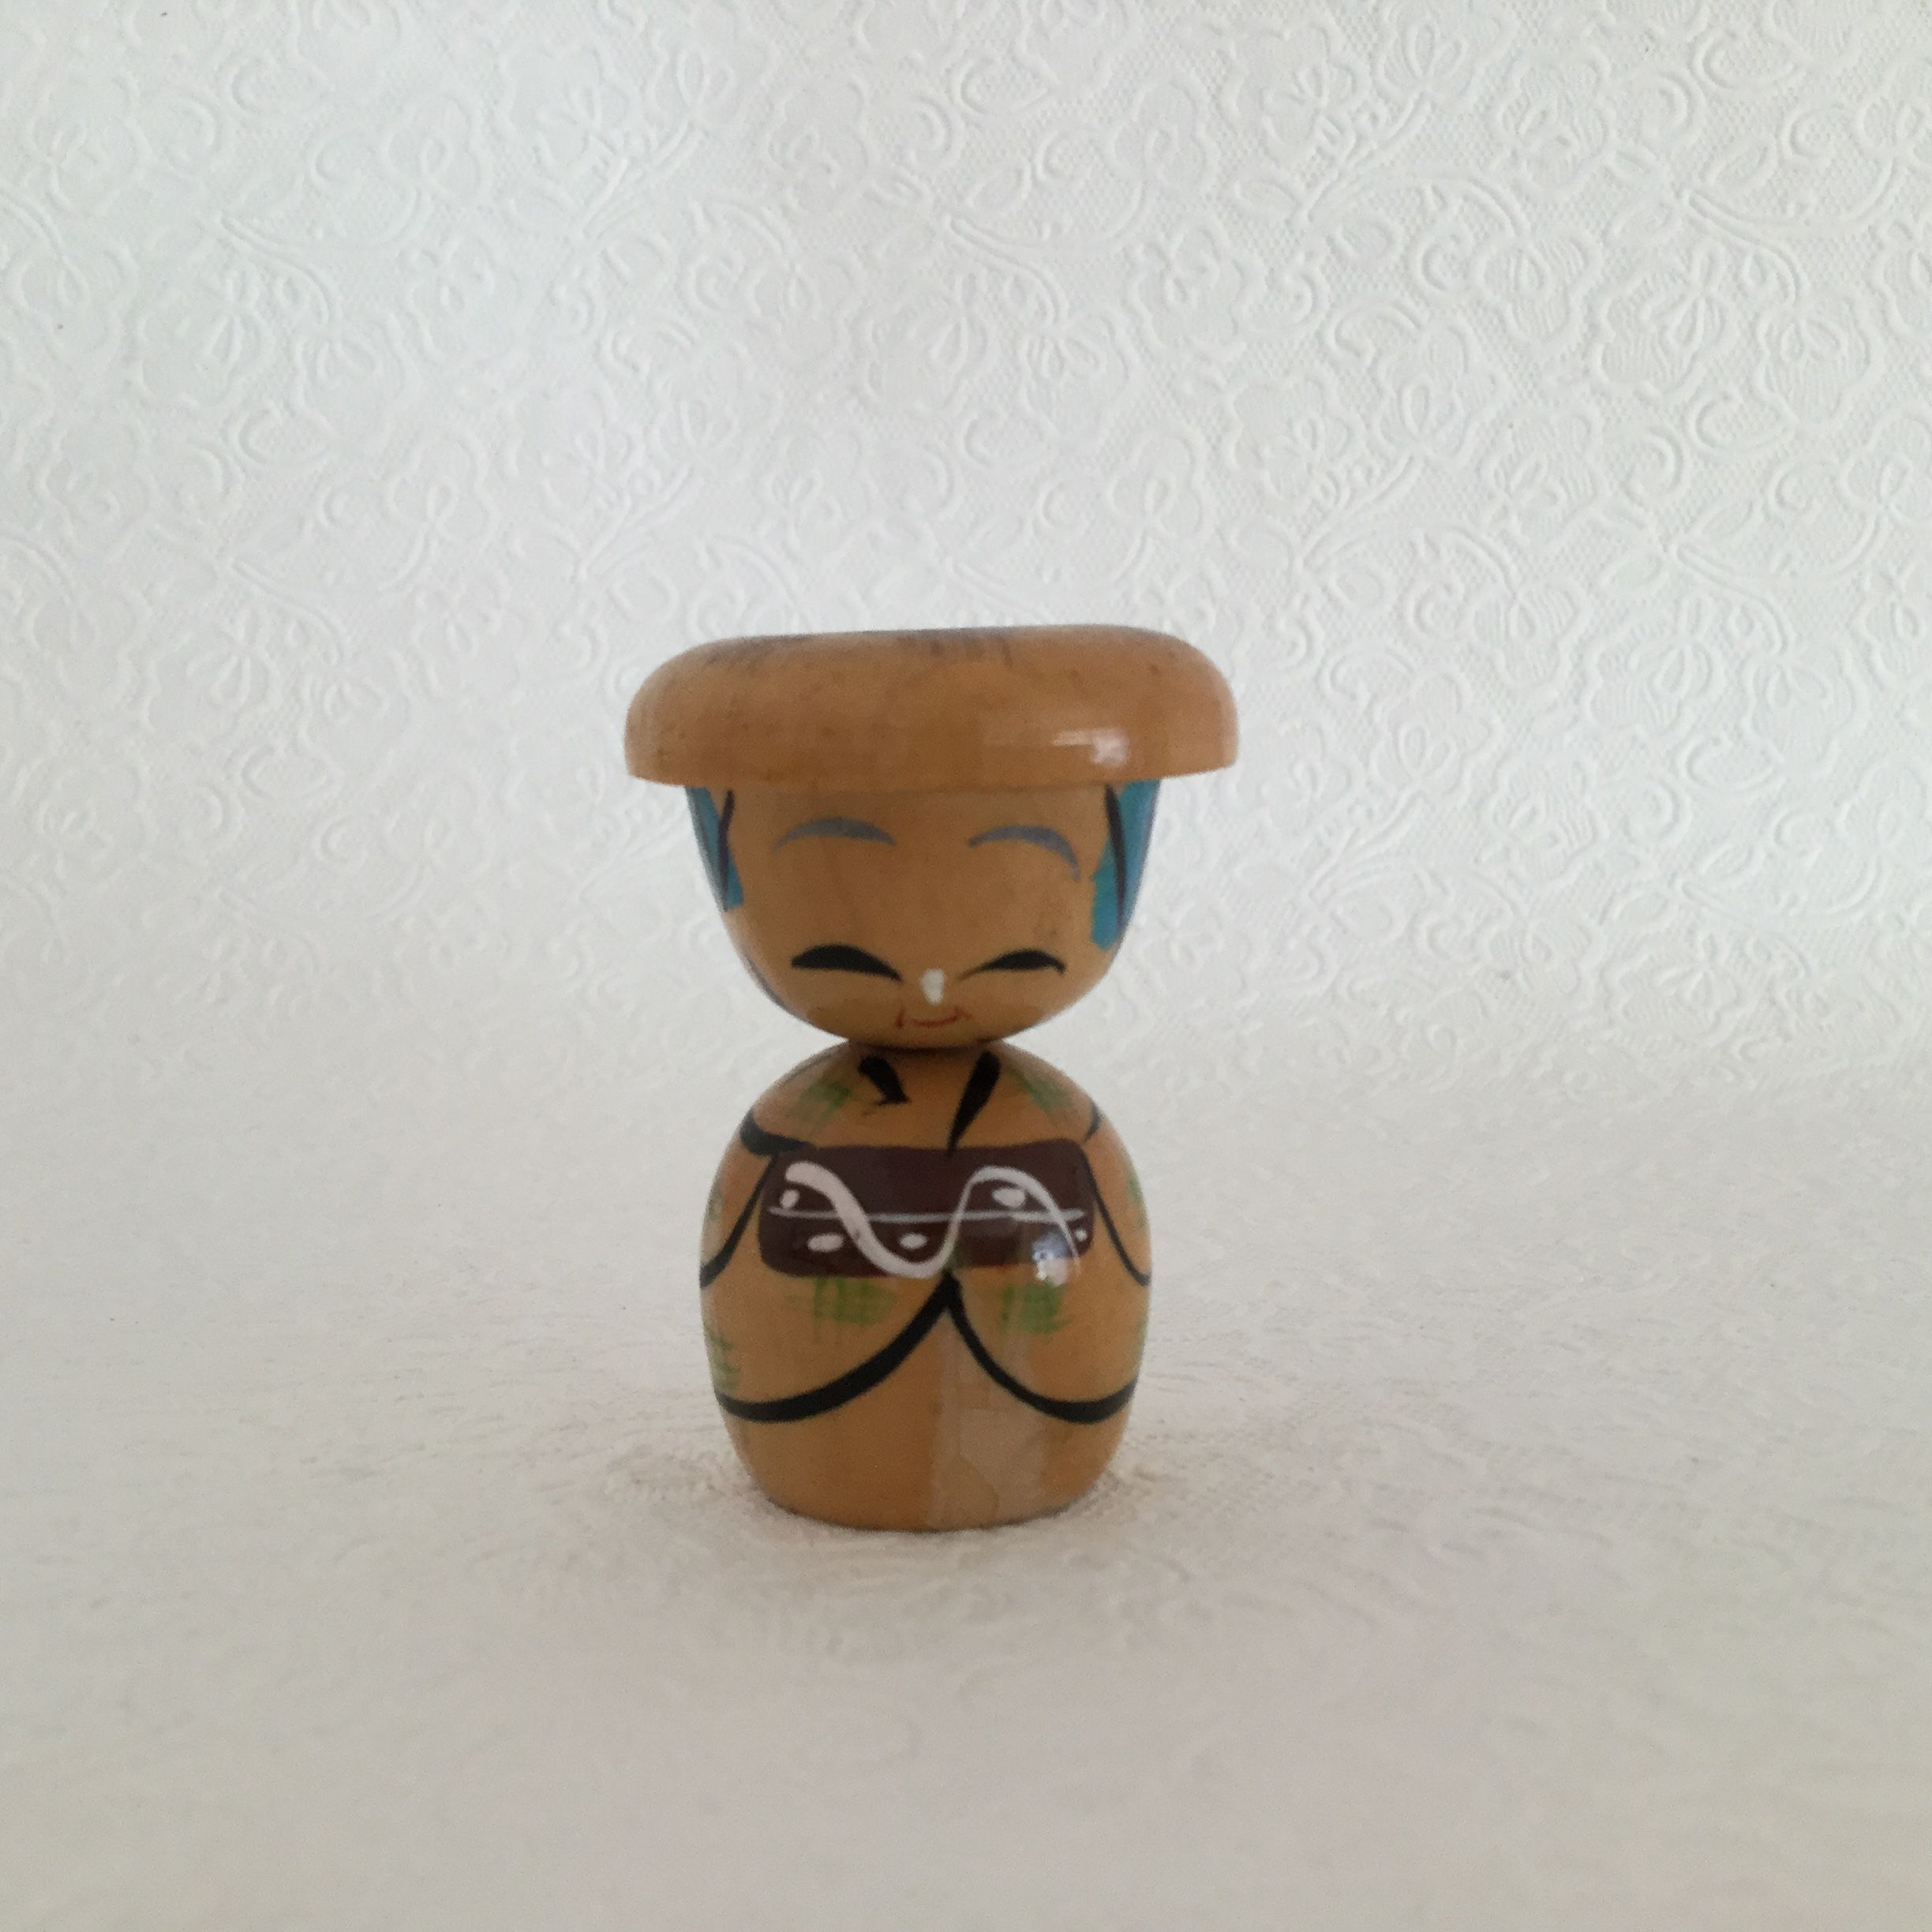 Kokeshi doll with hat Kokeshi dolls, Kokeshi, Dolls